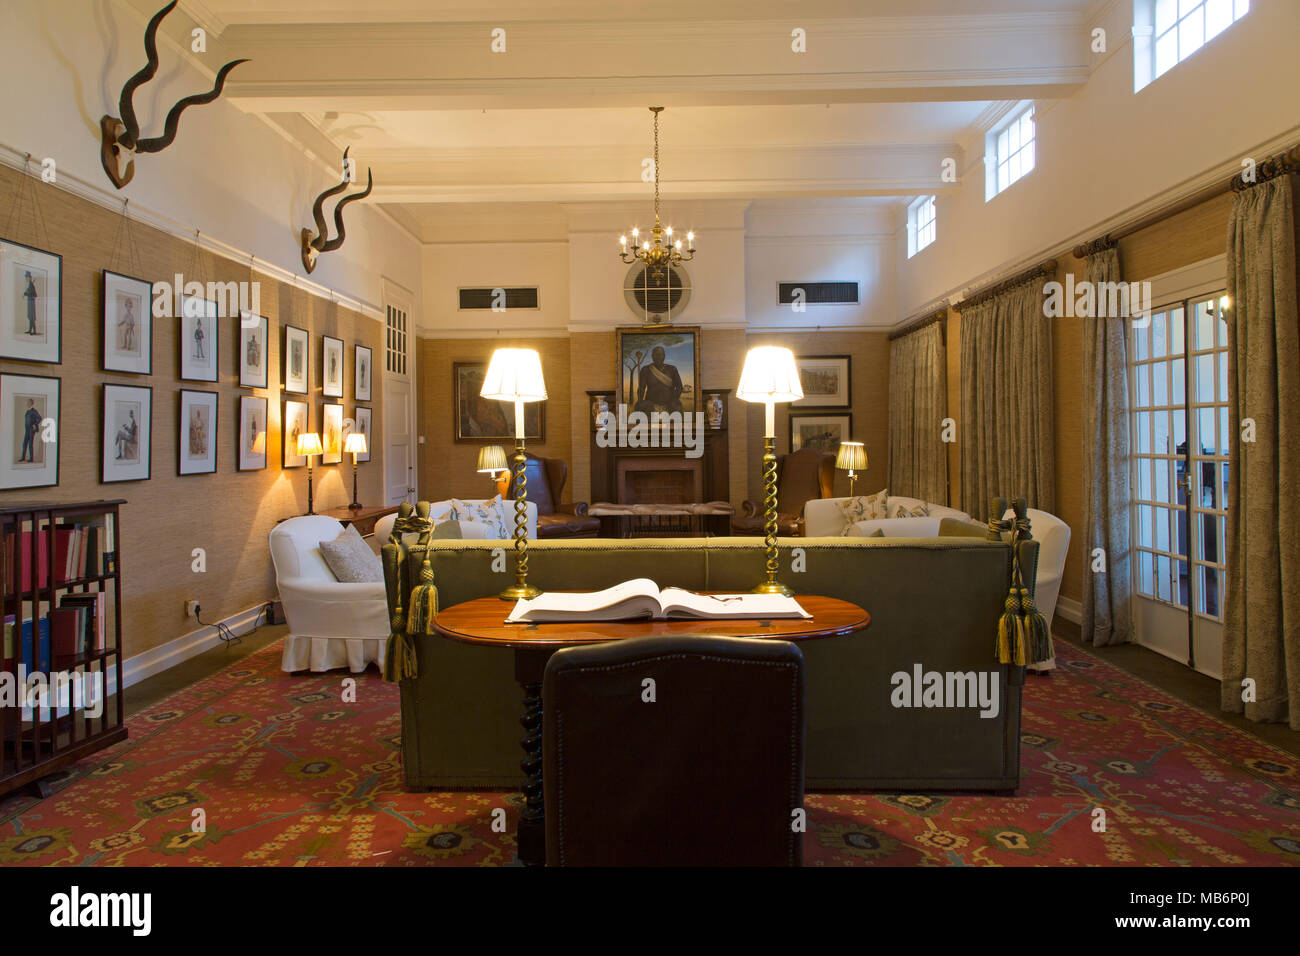 The Bulawayo Room At The Victoria Falls Hotel At Victoria Falls, Zimbabwe.  The Luxury Hotel Opened In 1905 And Has Colonial Style Interiors.